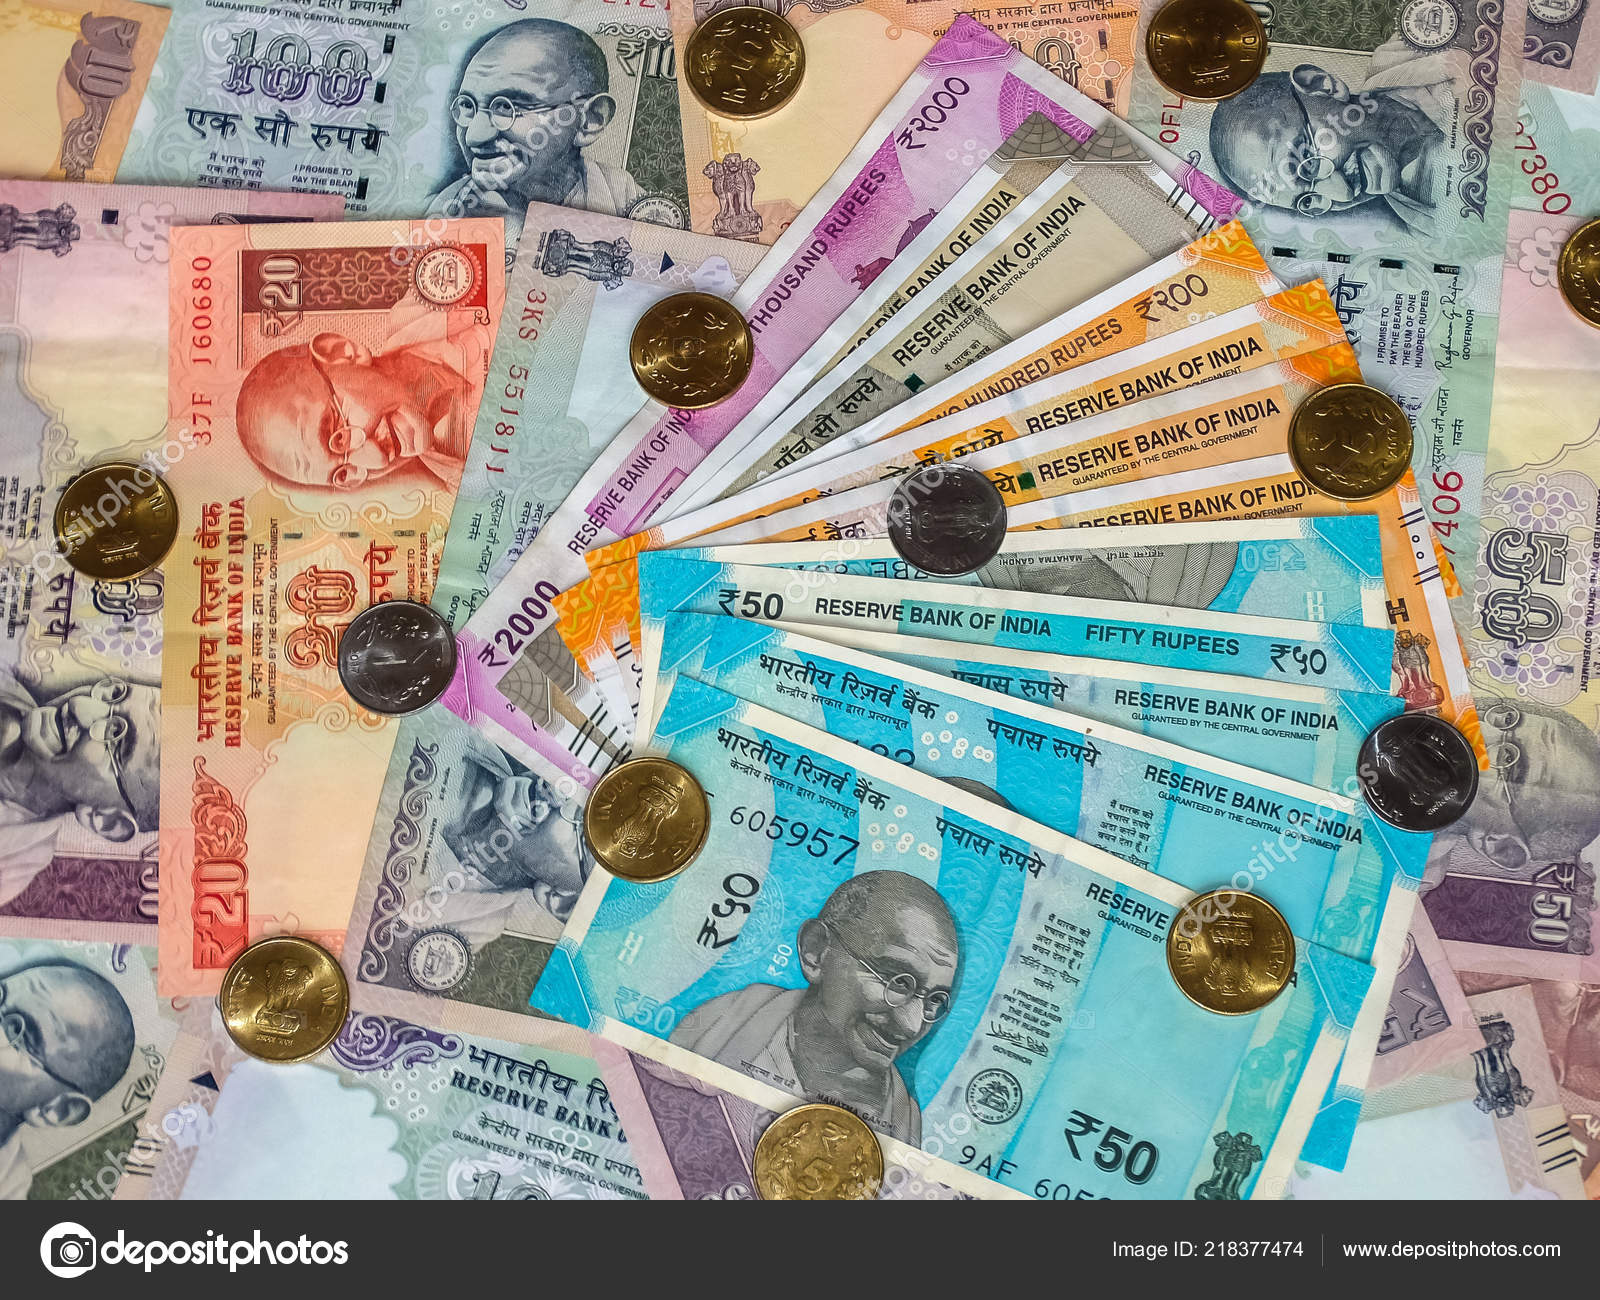 Pictures: old indian notes | 100 200 500 2000 Indian Rupees